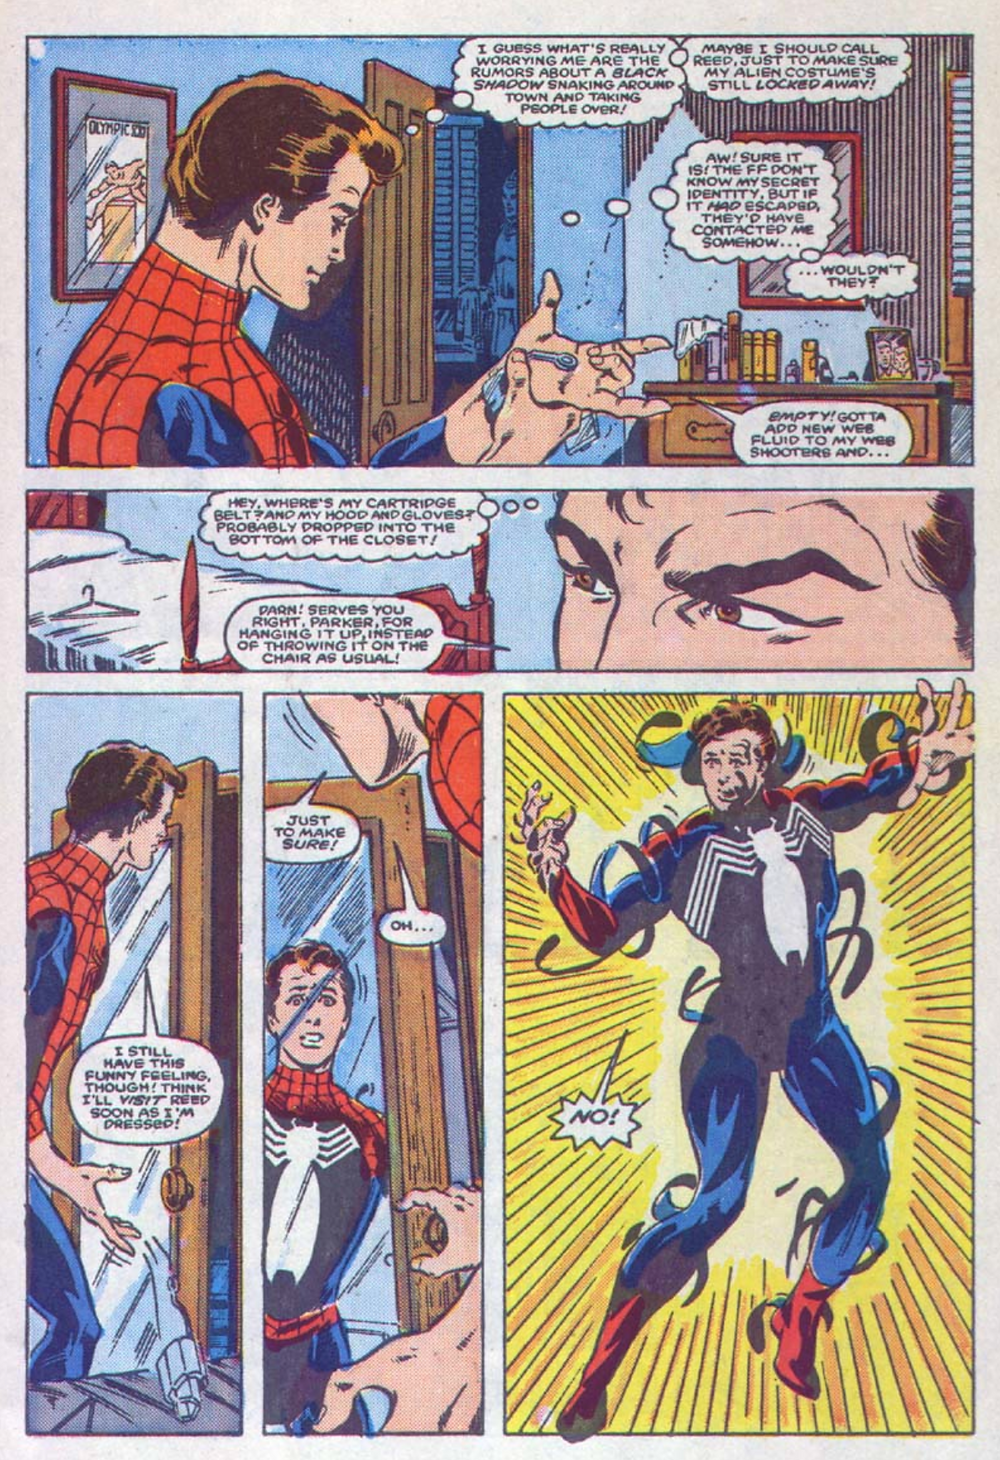 Web of Spider-Man #1 (1985)